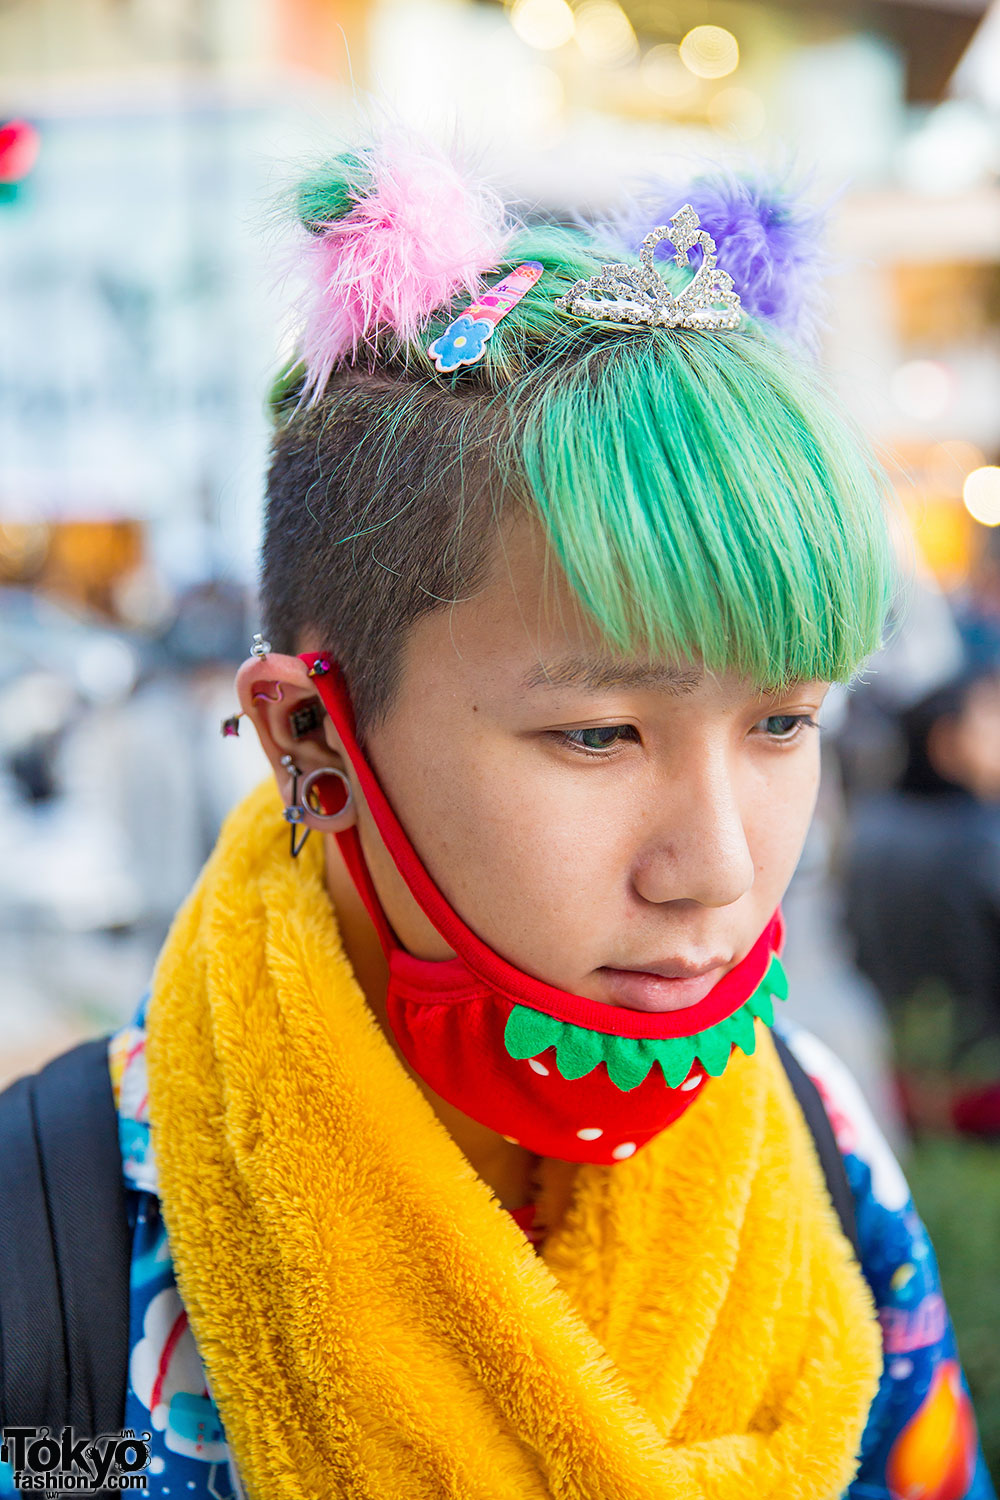 Harajuku Guy W Tiara In Colorful Hair Hello Kitty